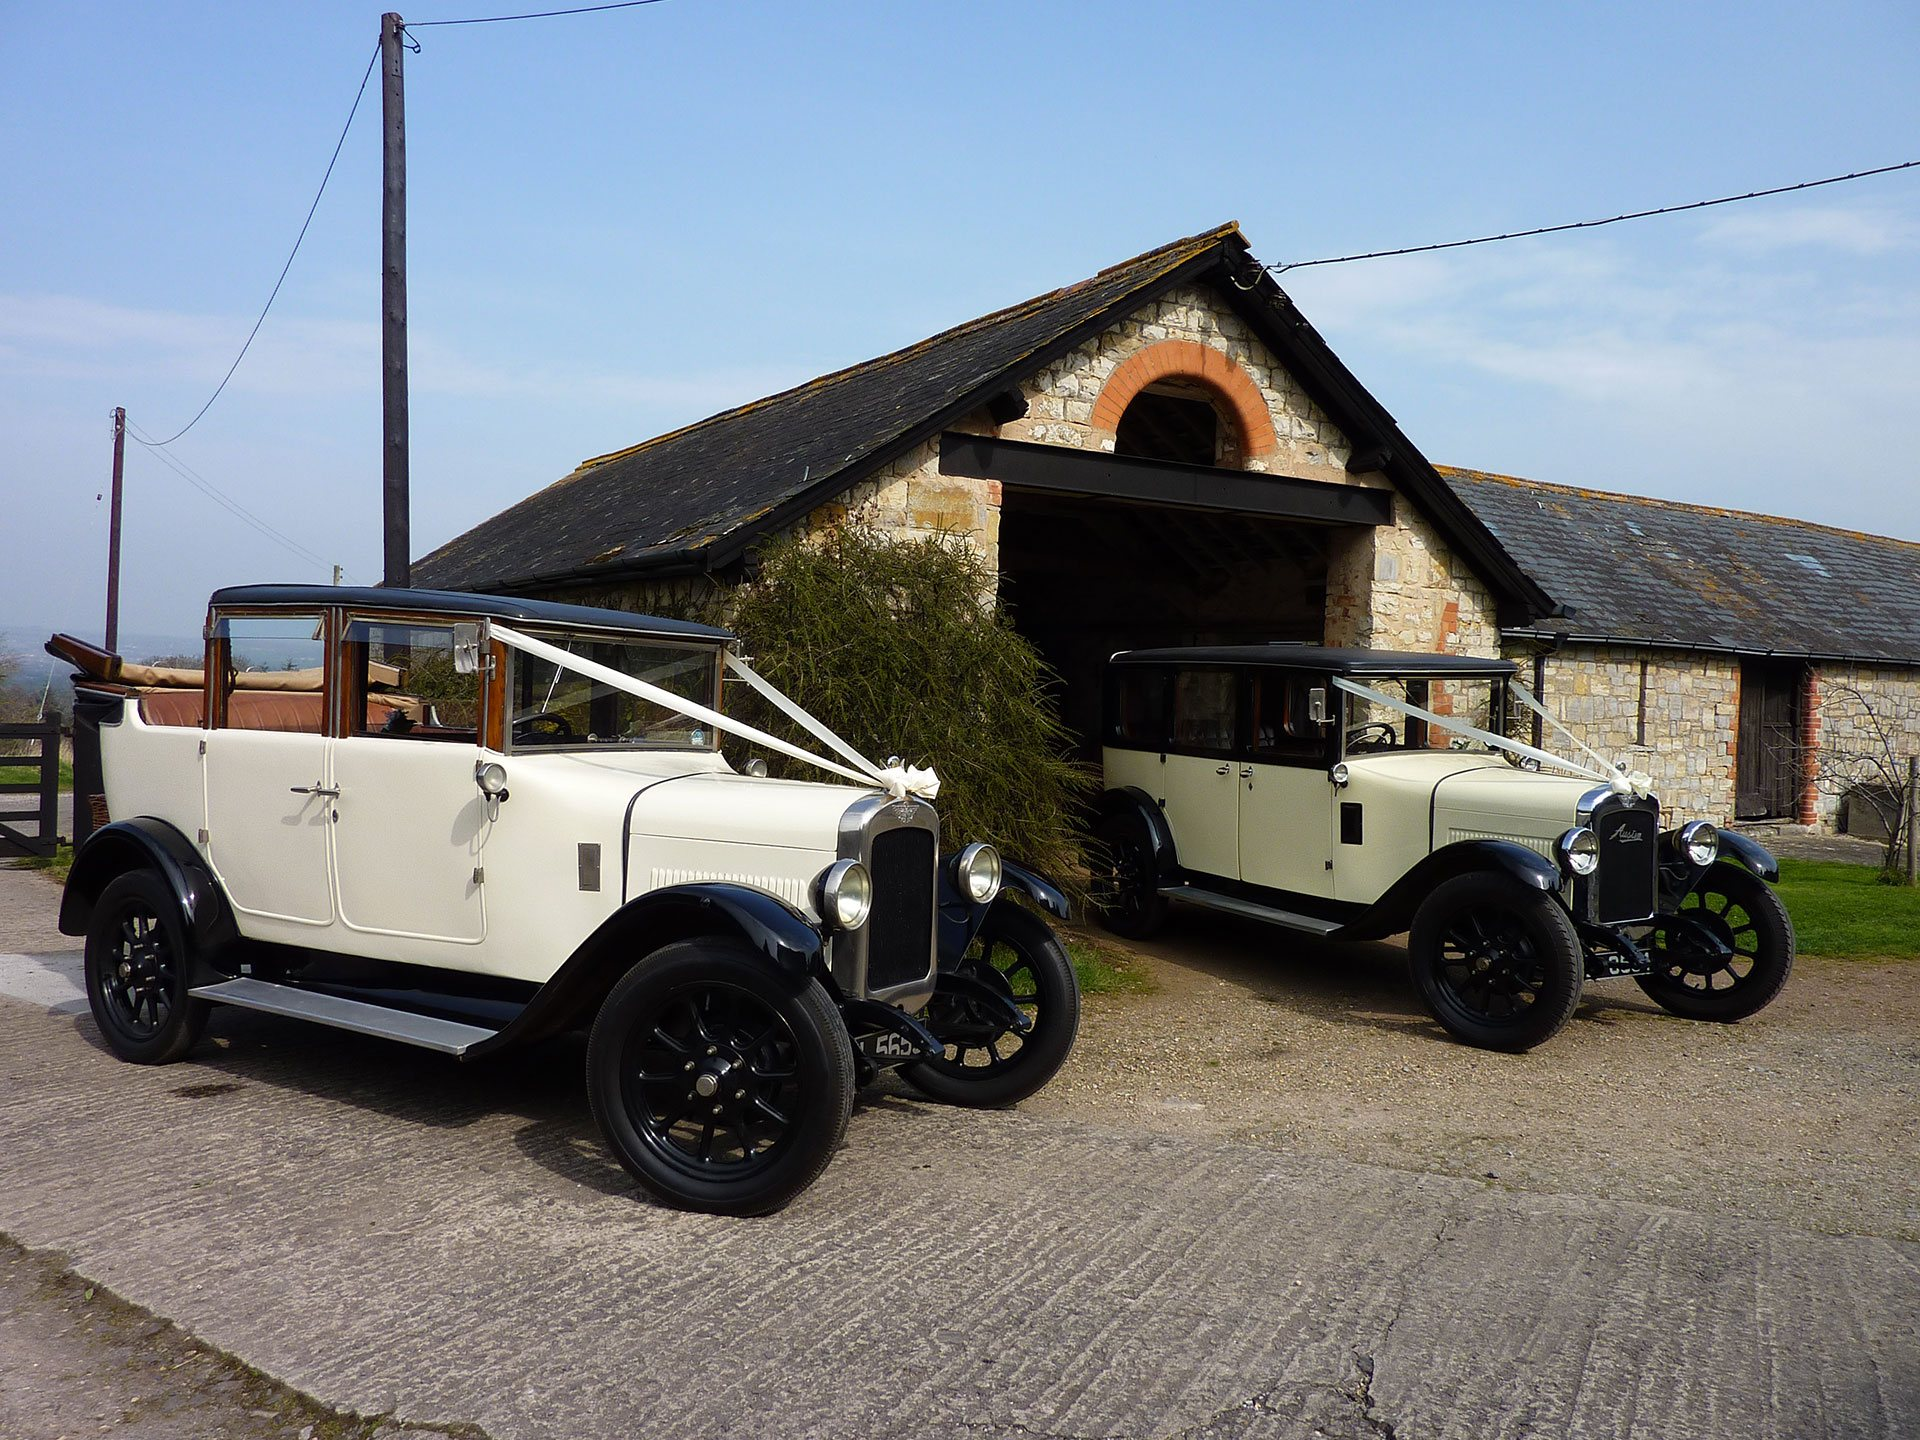 Wedding Cars for Hire Somerset Wedding Car hire Taunton Bridgwater